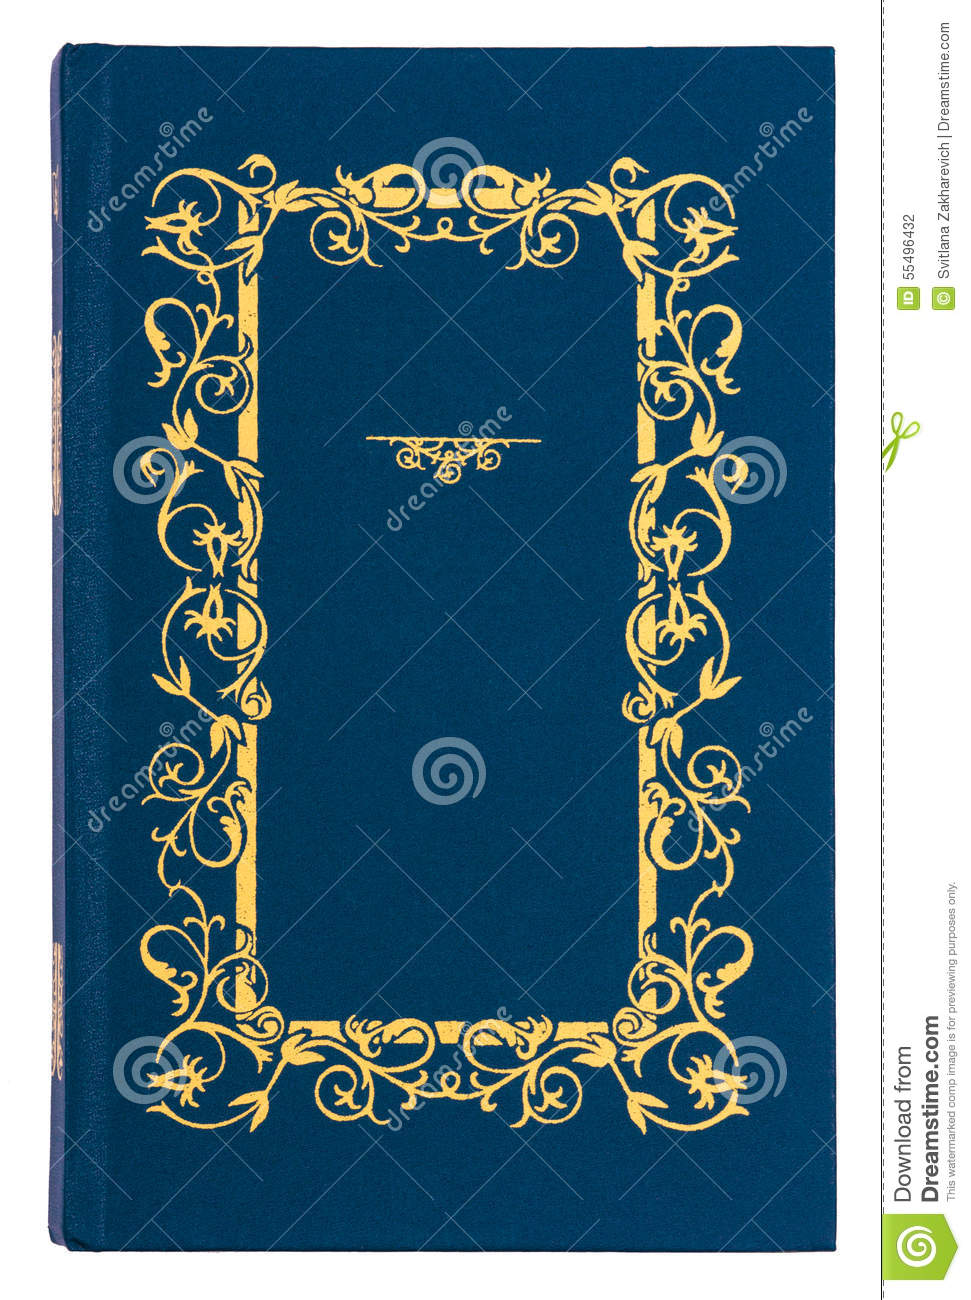 Book Cover Design Pattern : Blue with gold pattern vintage book cover stock